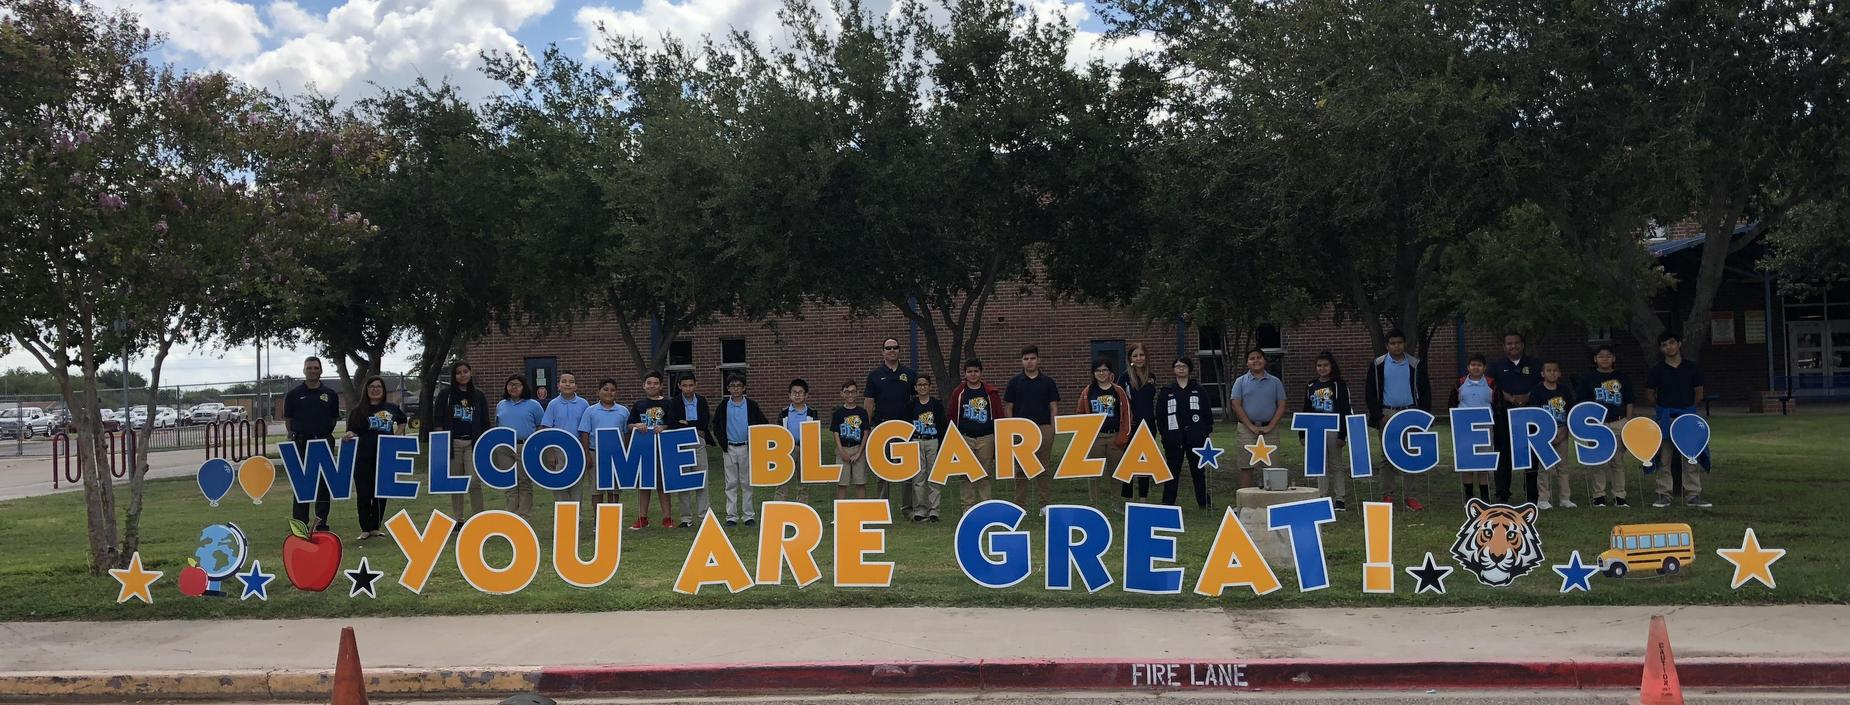 Image of BL Garza students and welcome sign